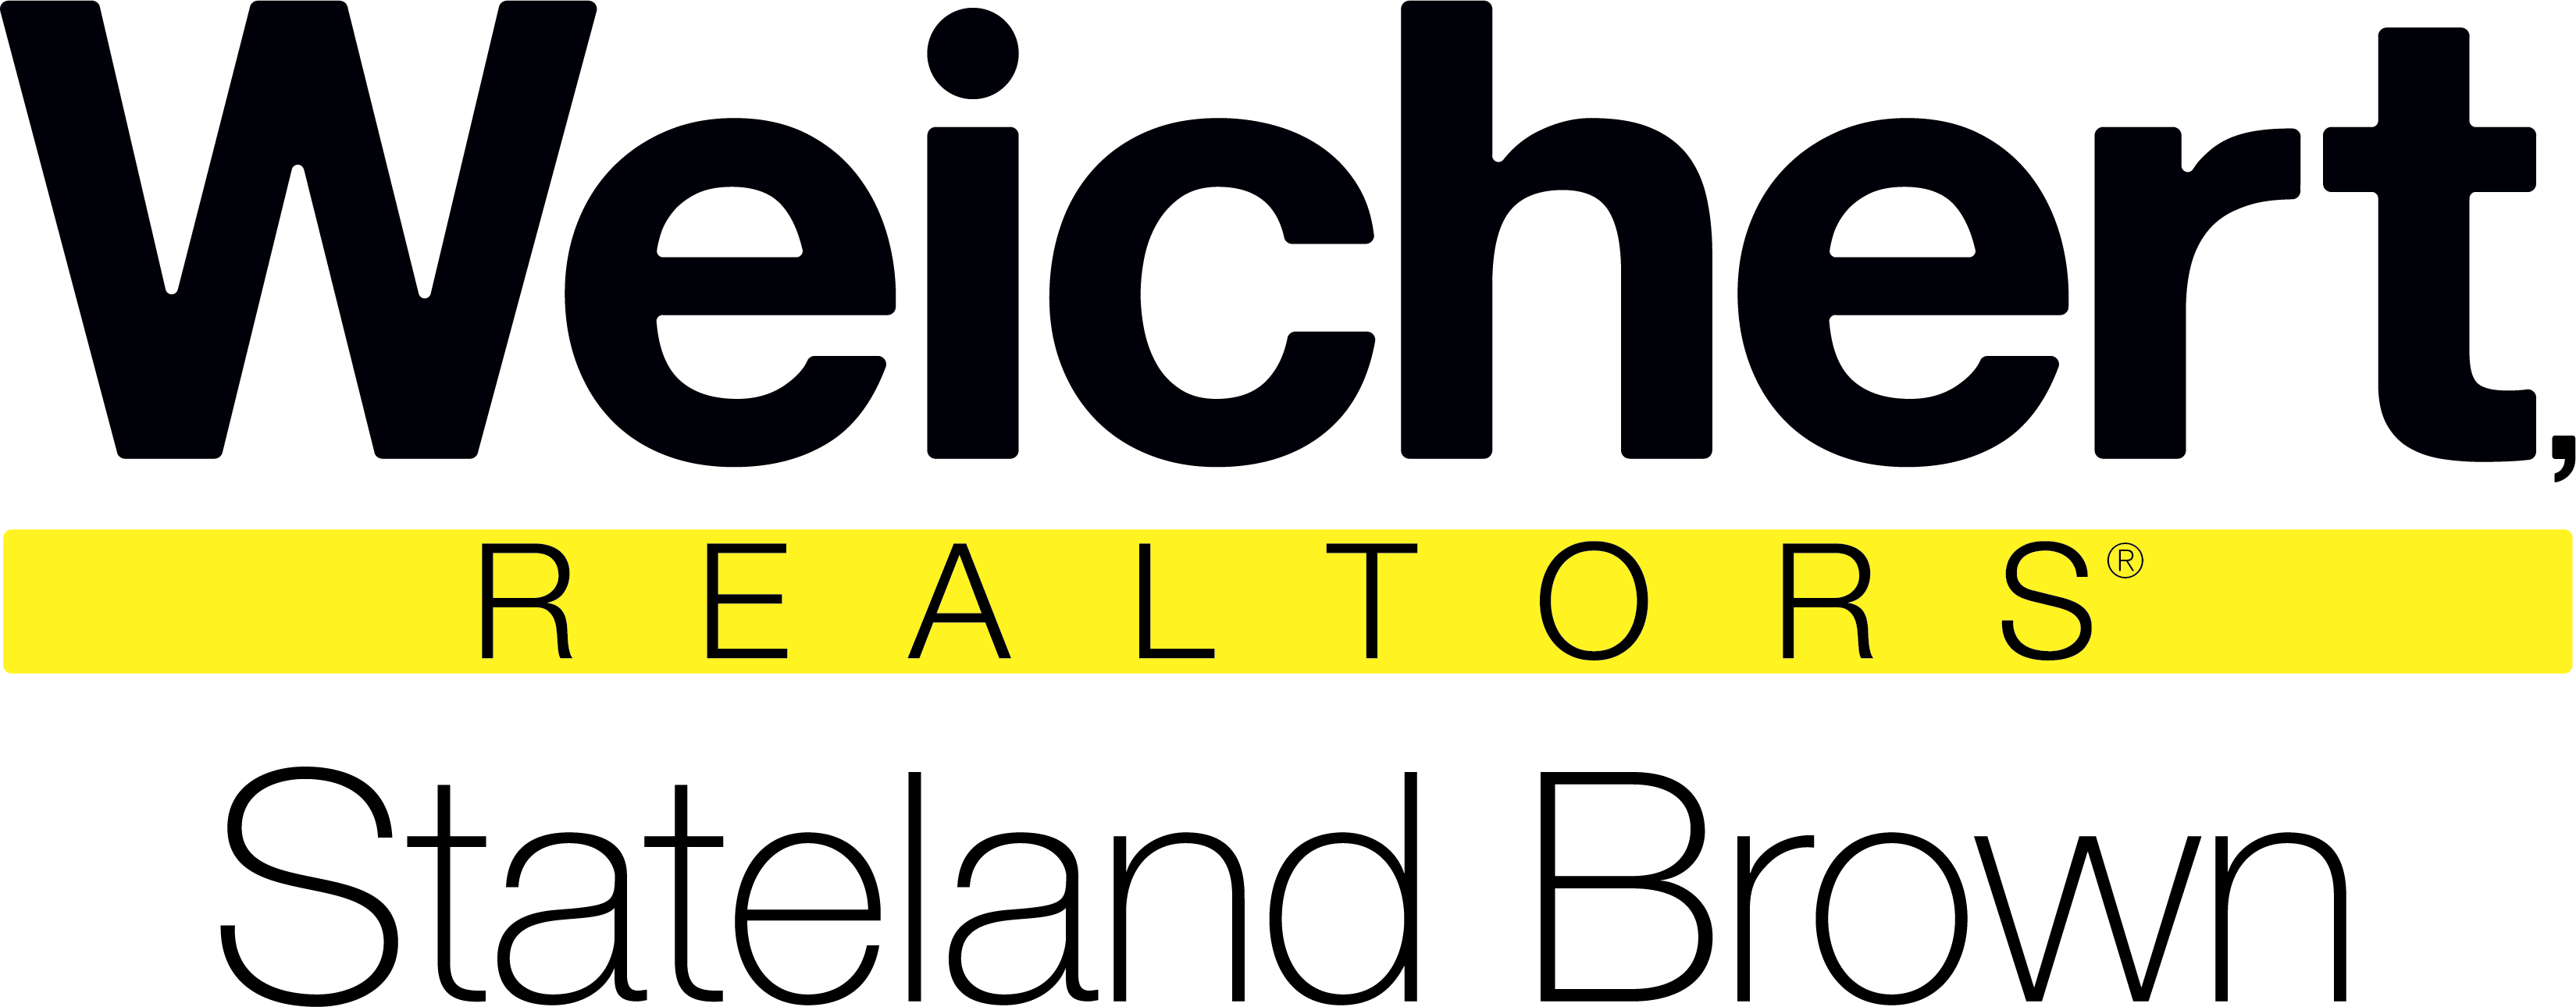 Weichert, Realtors - Stateland Brown is now Hiring Sales Associates for our Delray Beach Office